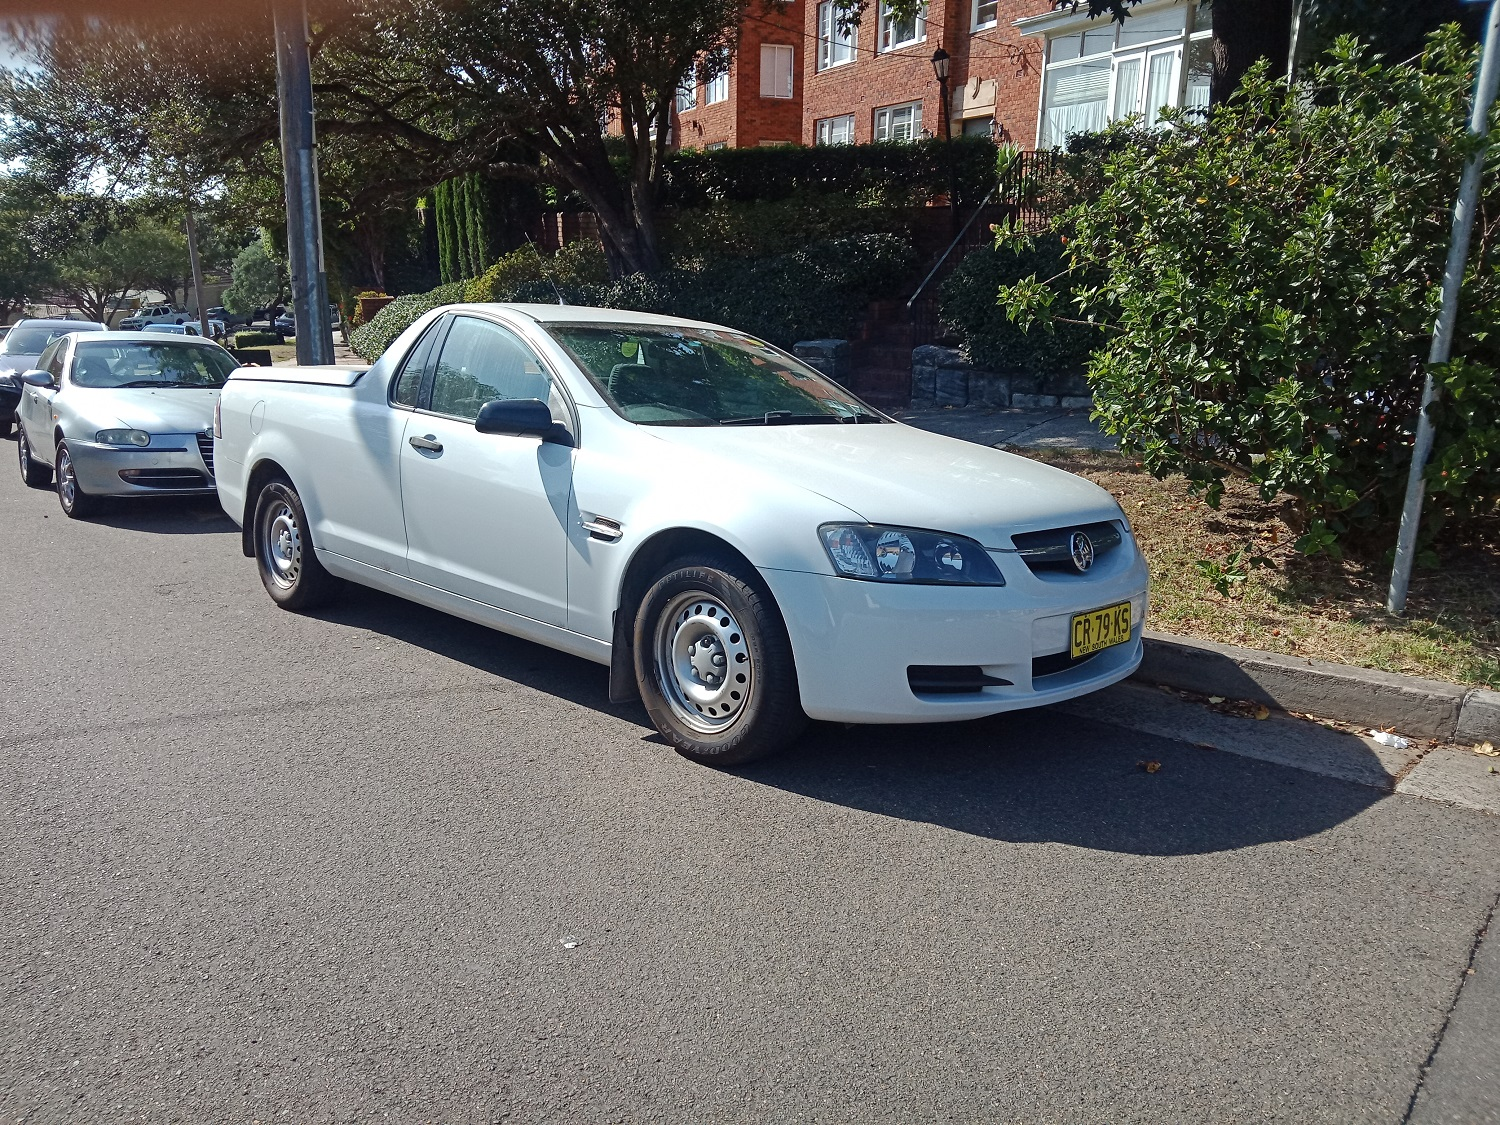 Picture of Darren's 2009 Holden Utility